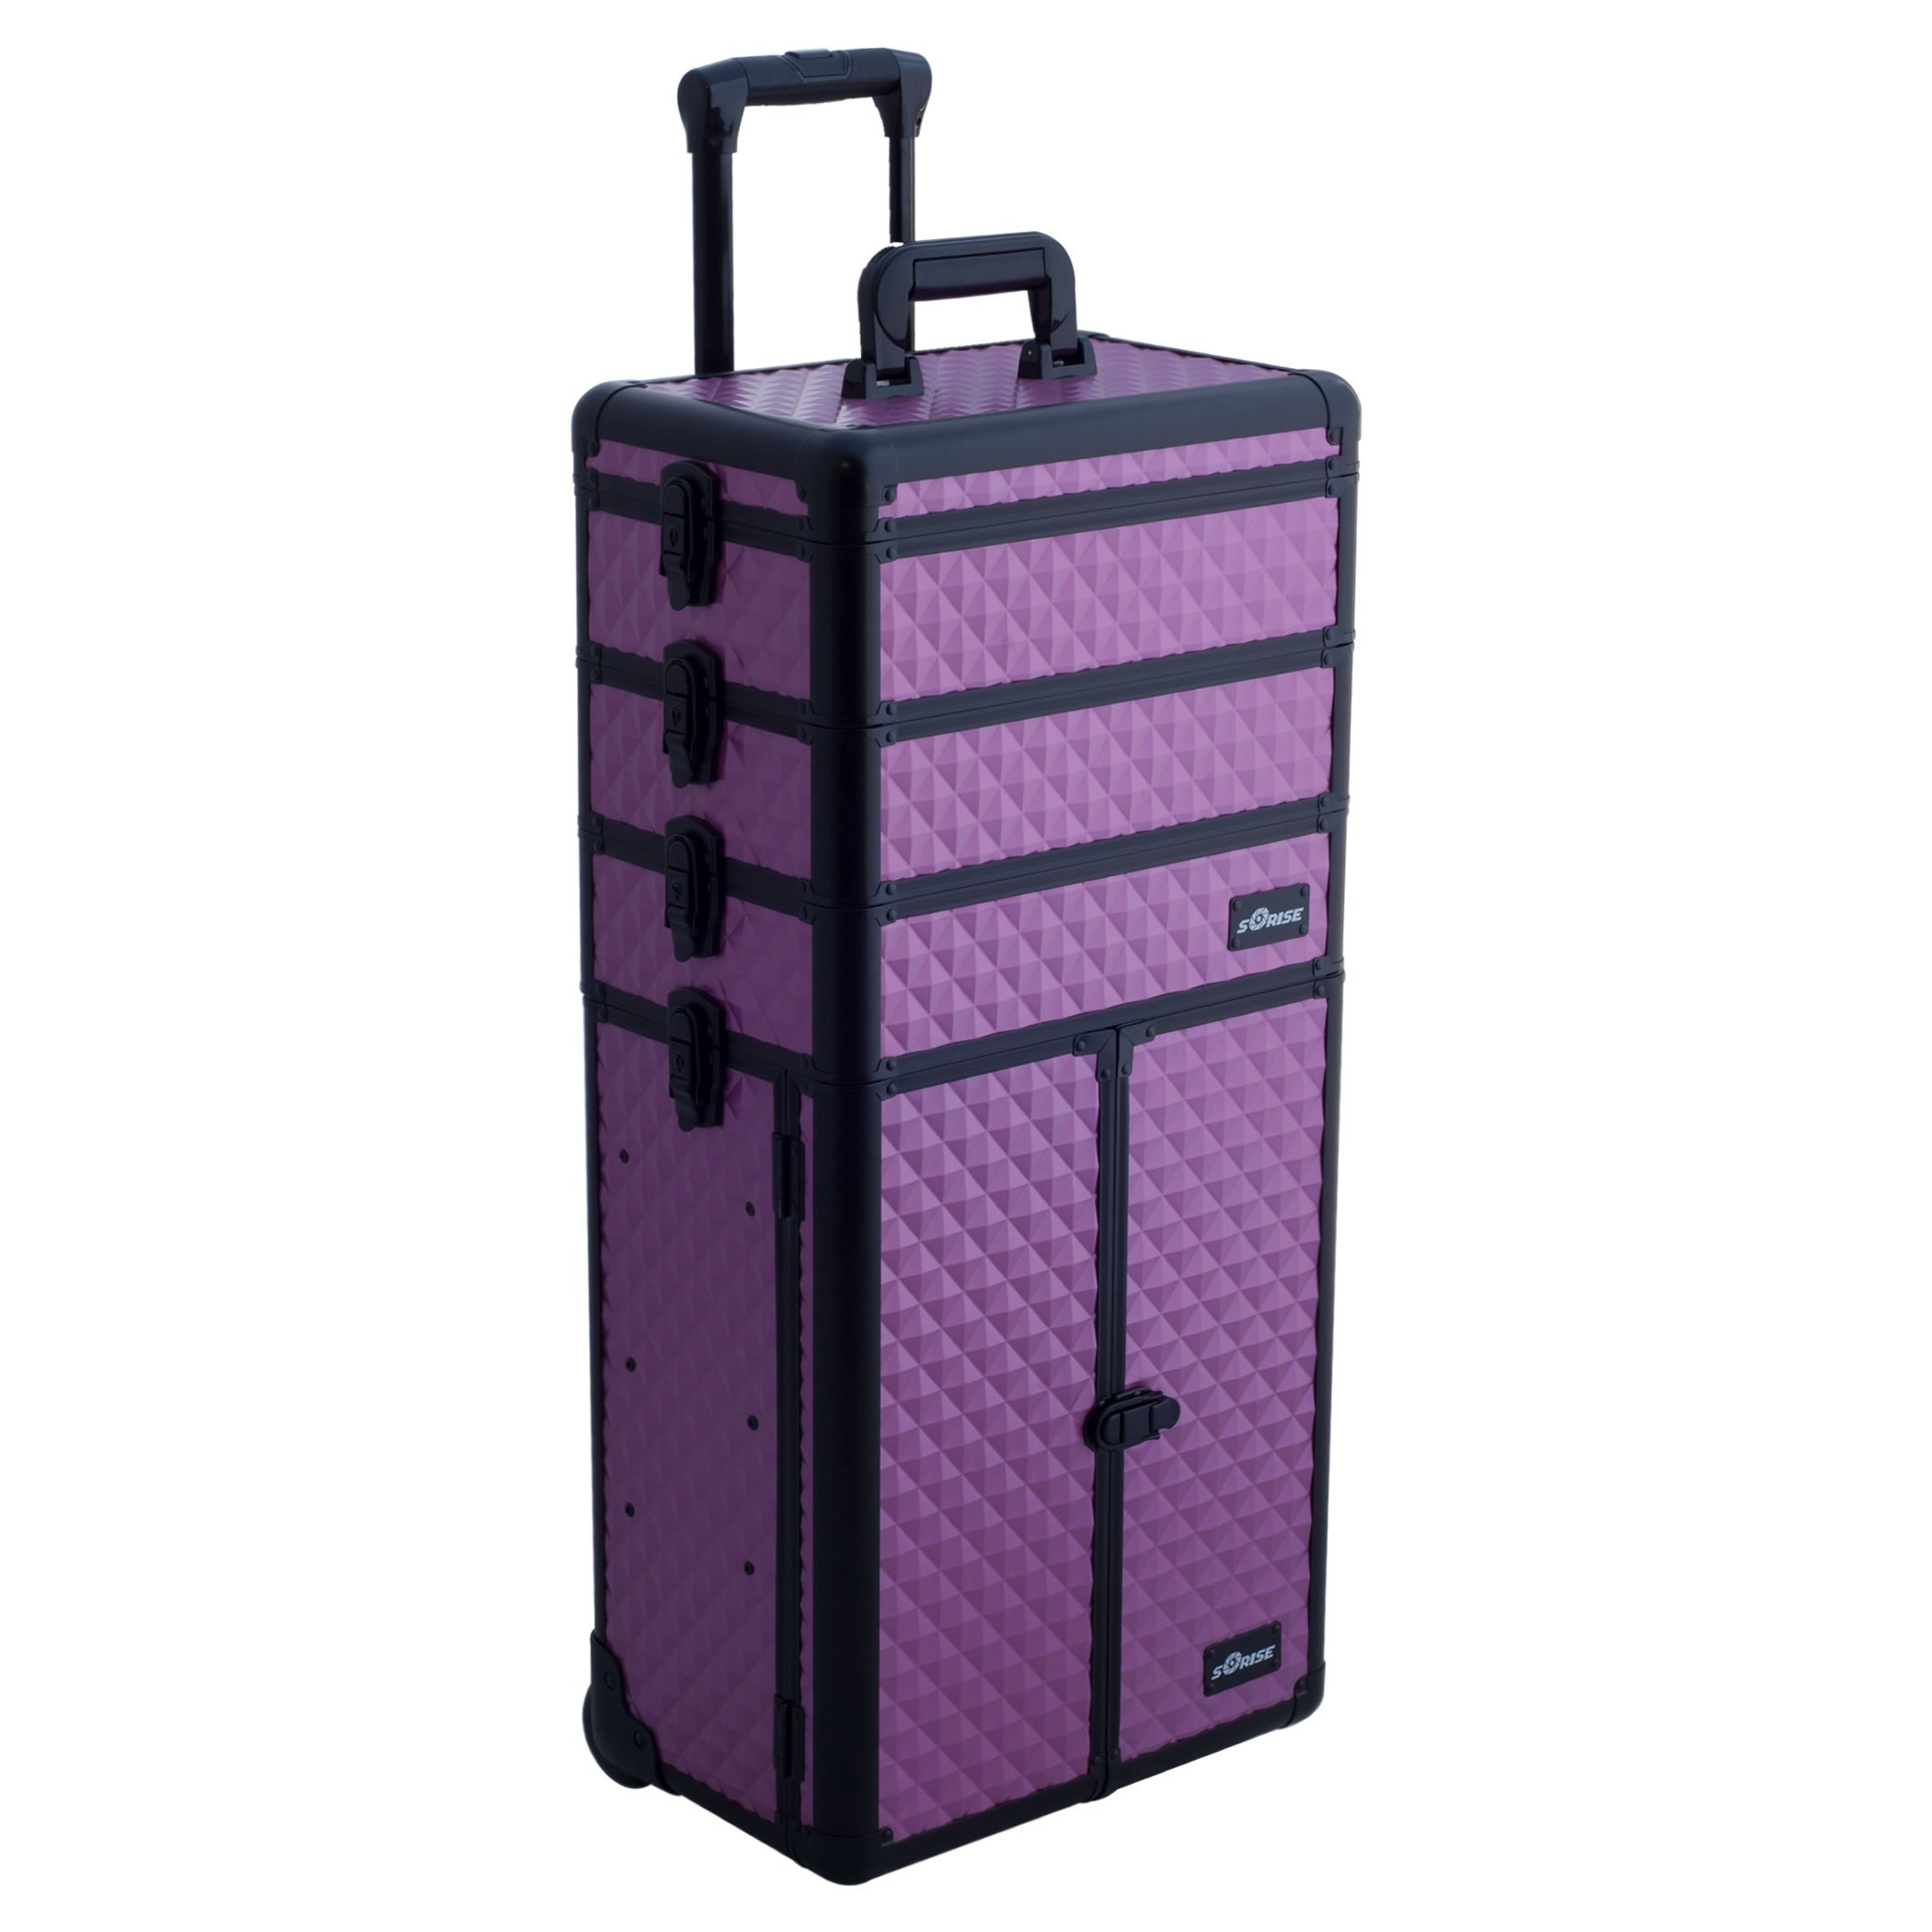 SUNRISE Makeup Case on Wheels 4 in 1 Professional Organizer I3366, 3 Stackable Trays and 2 Drawers, Locking with Mirror, Purple Diamond